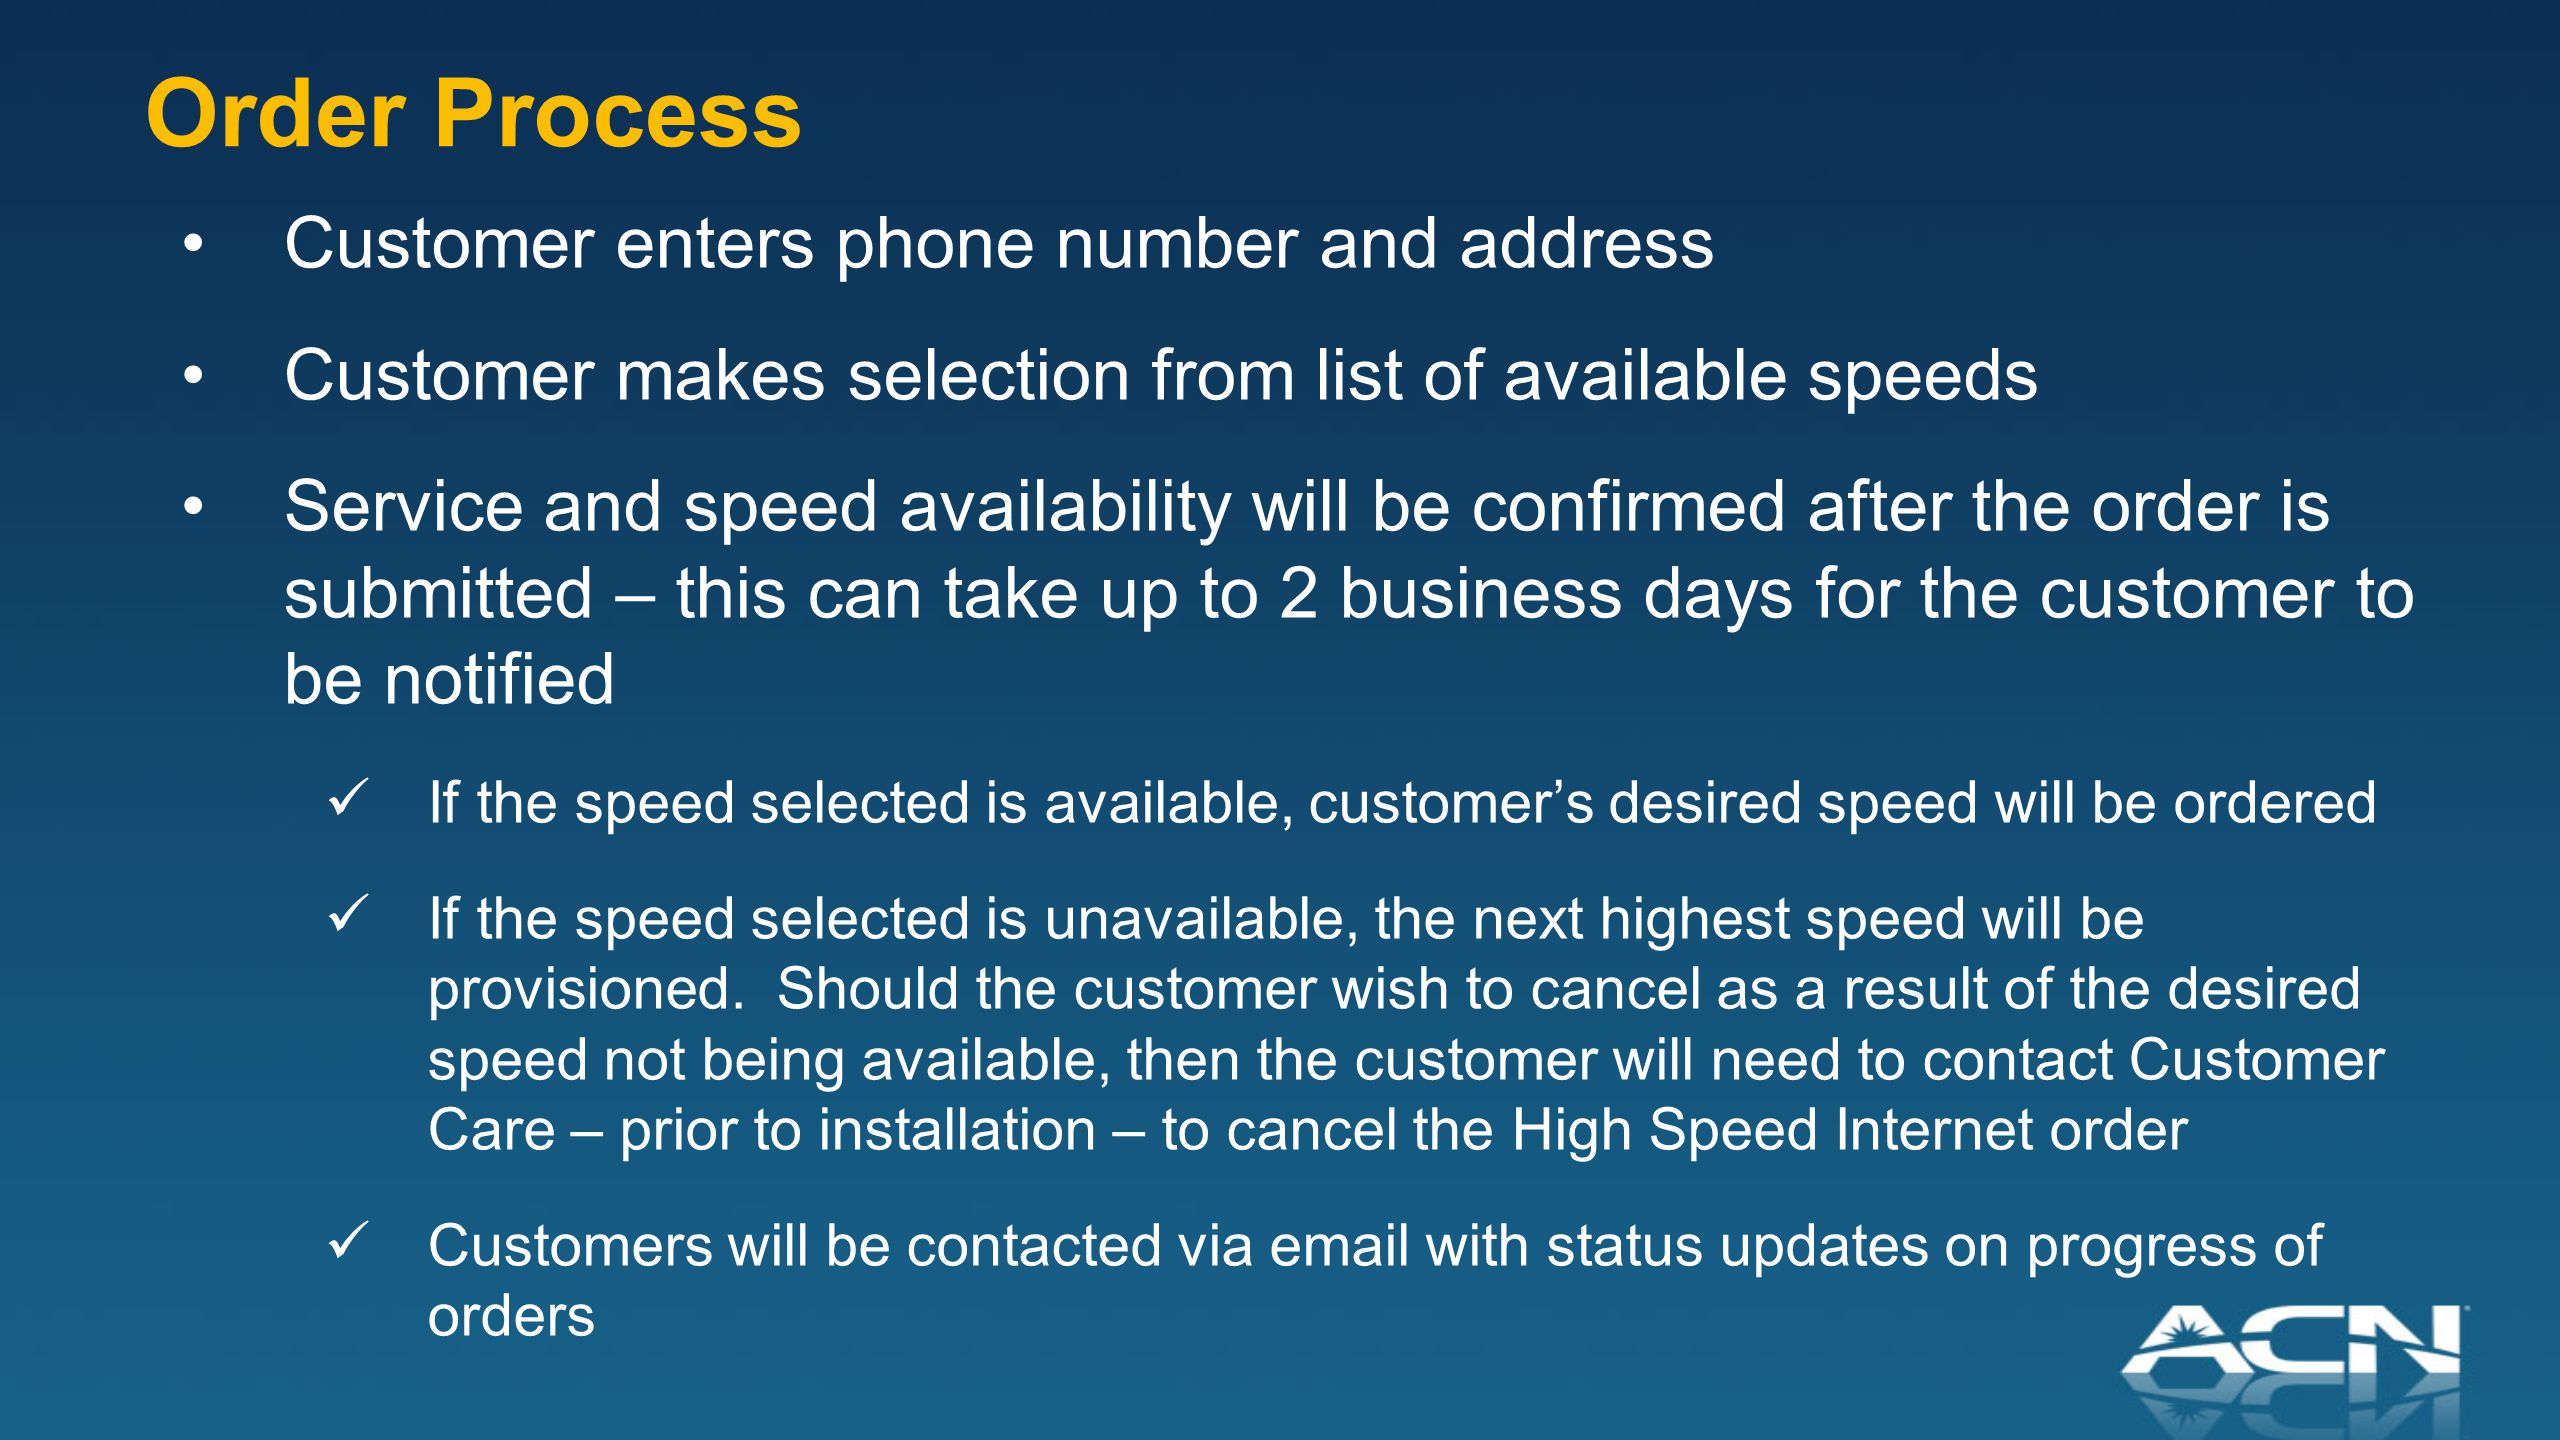 Customer enters phone number and address Customer makes selection from list of available speeds Service and speed availability will be confirmed after the order is submitted – this can take up to 2 business days for the customer to be notified If the speed selected is available, customer's desired speed will be ordered If the speed selected is unavailable, the next highest speed will be provisioned.